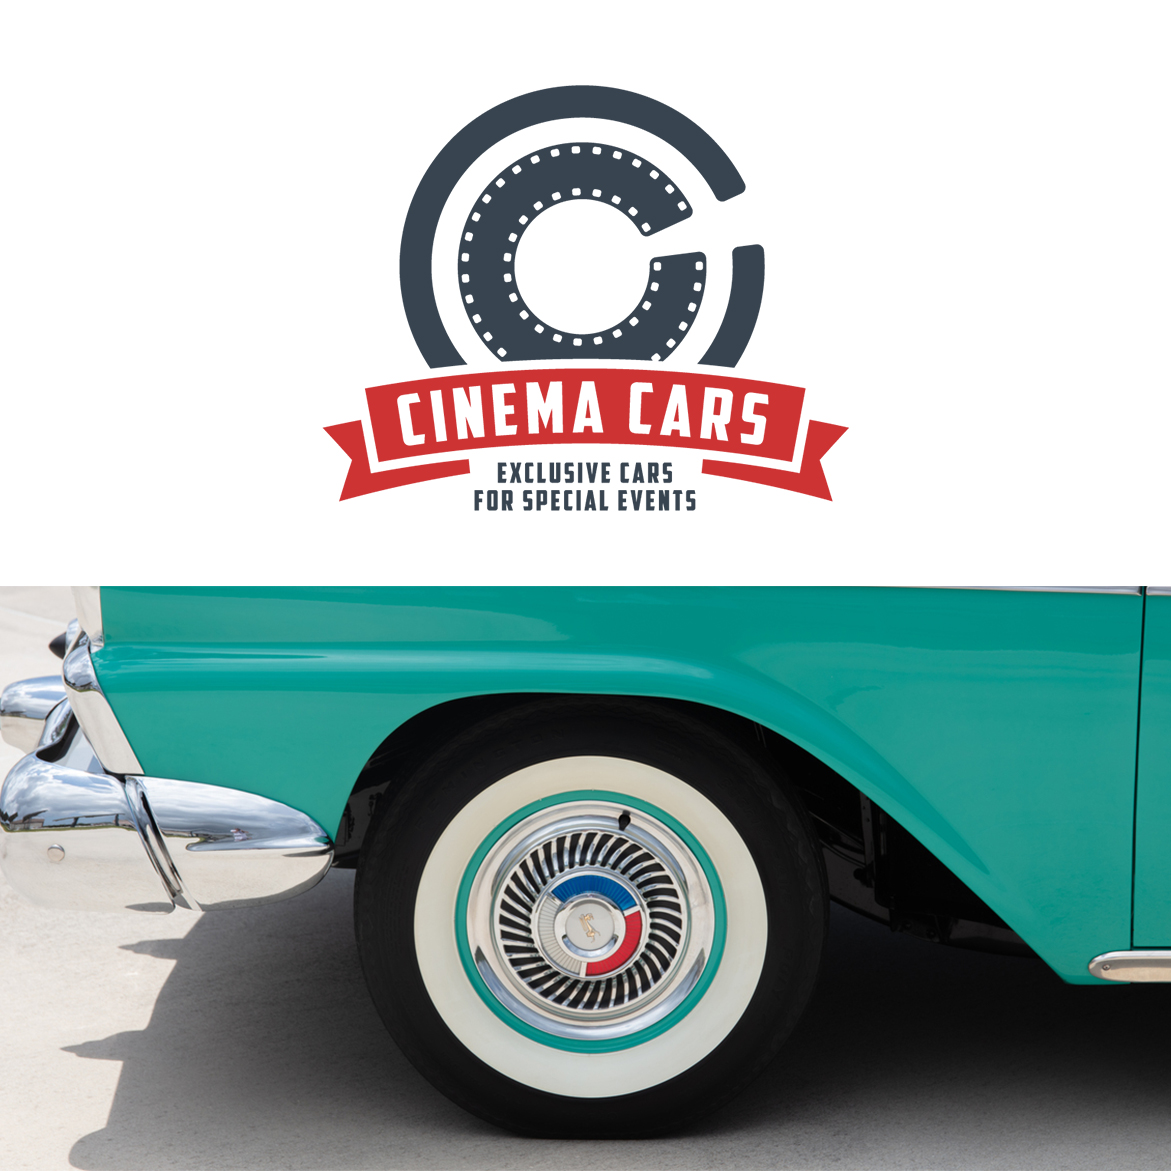 Cinema Cars Logo Design